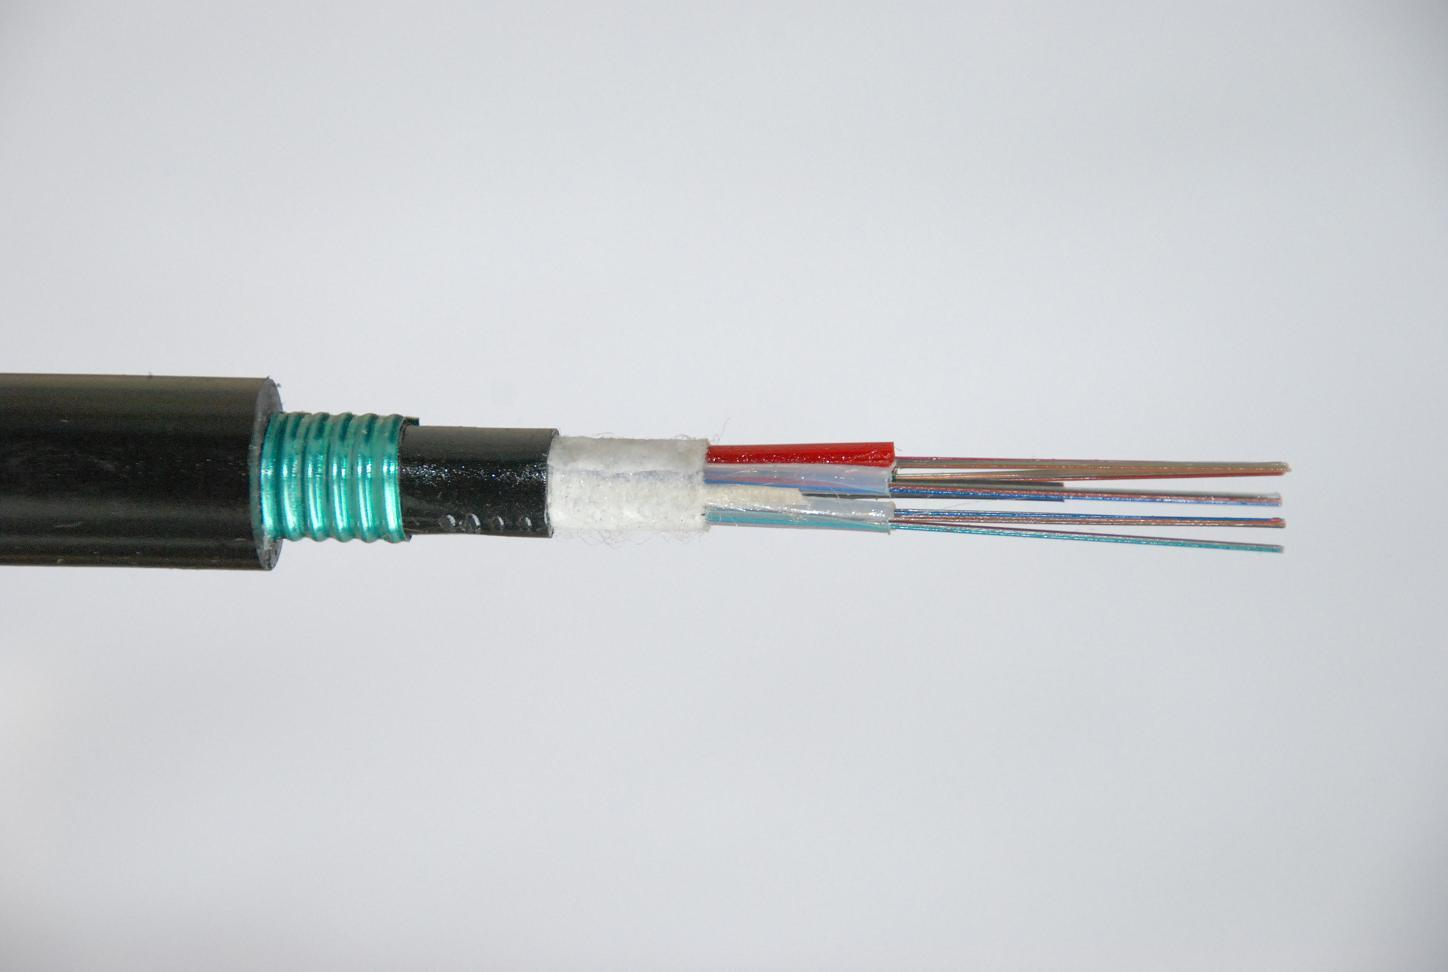 Optical Fiber Cable : The information is not available right now